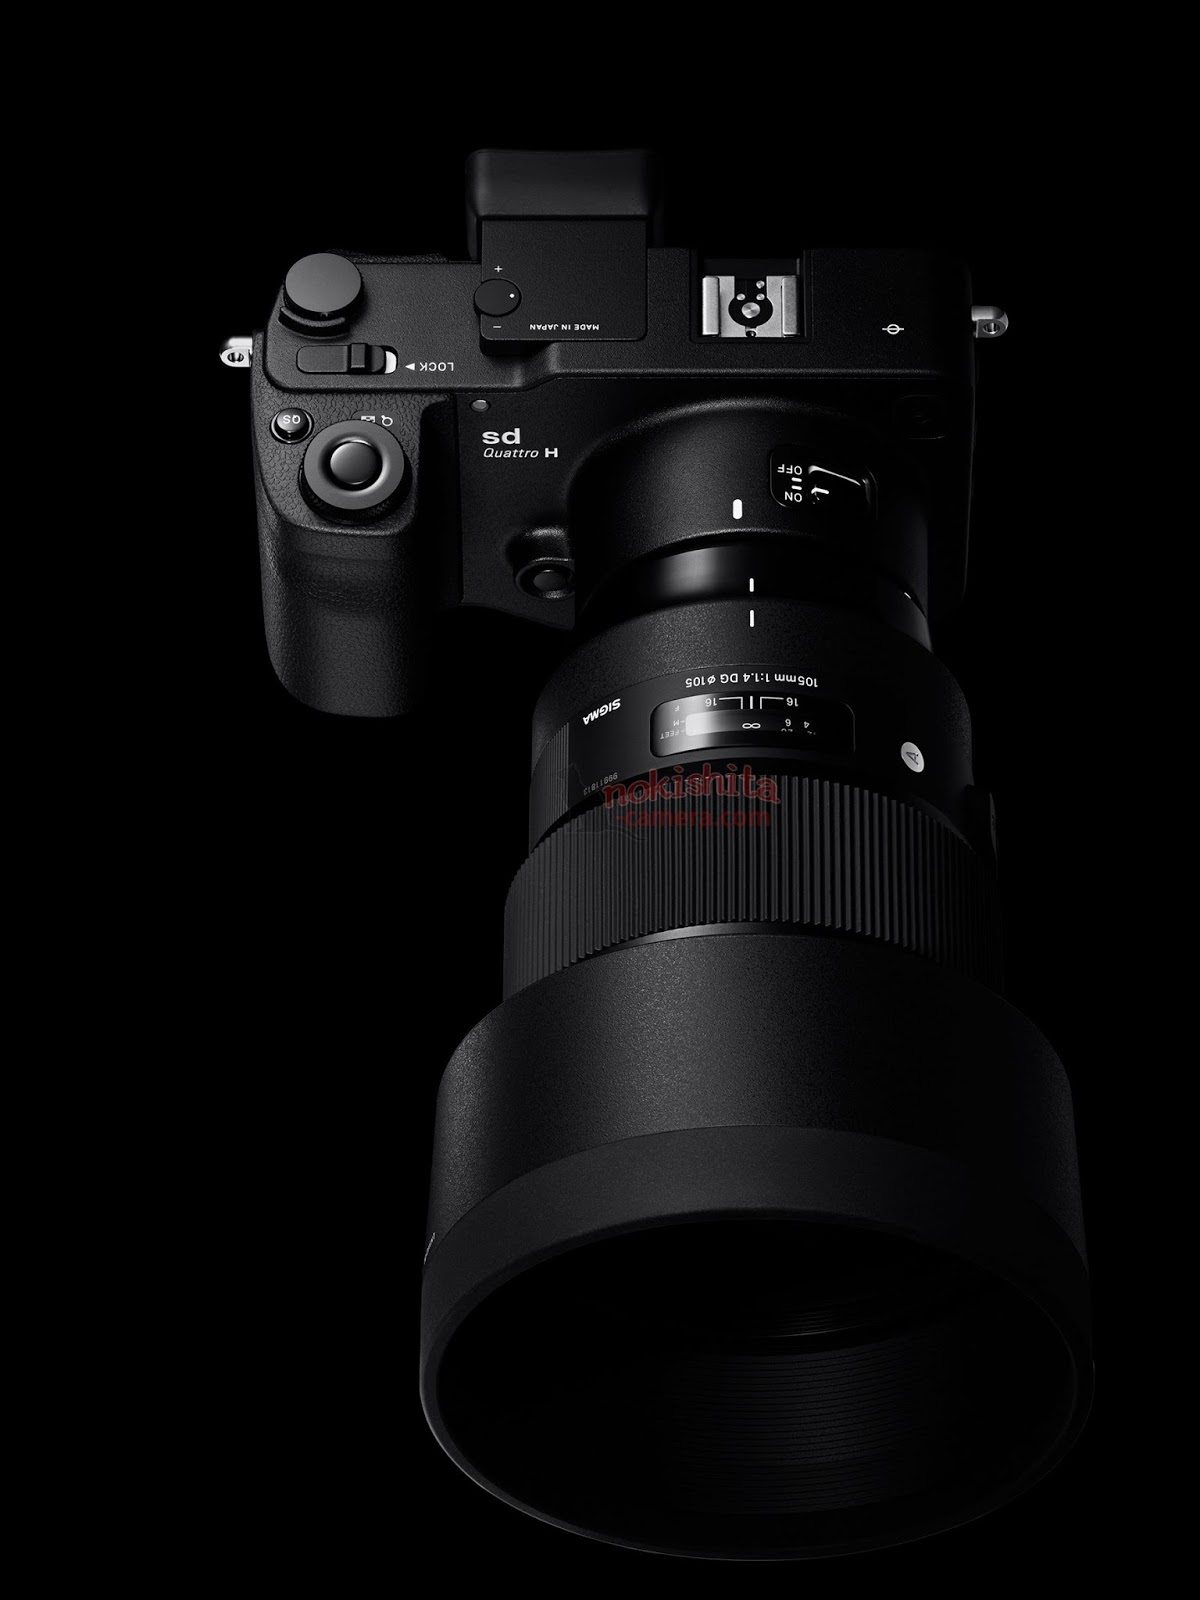 New Images Of Sigma 105mm F 1 4 Dg Hsm Art Lens For Sony E